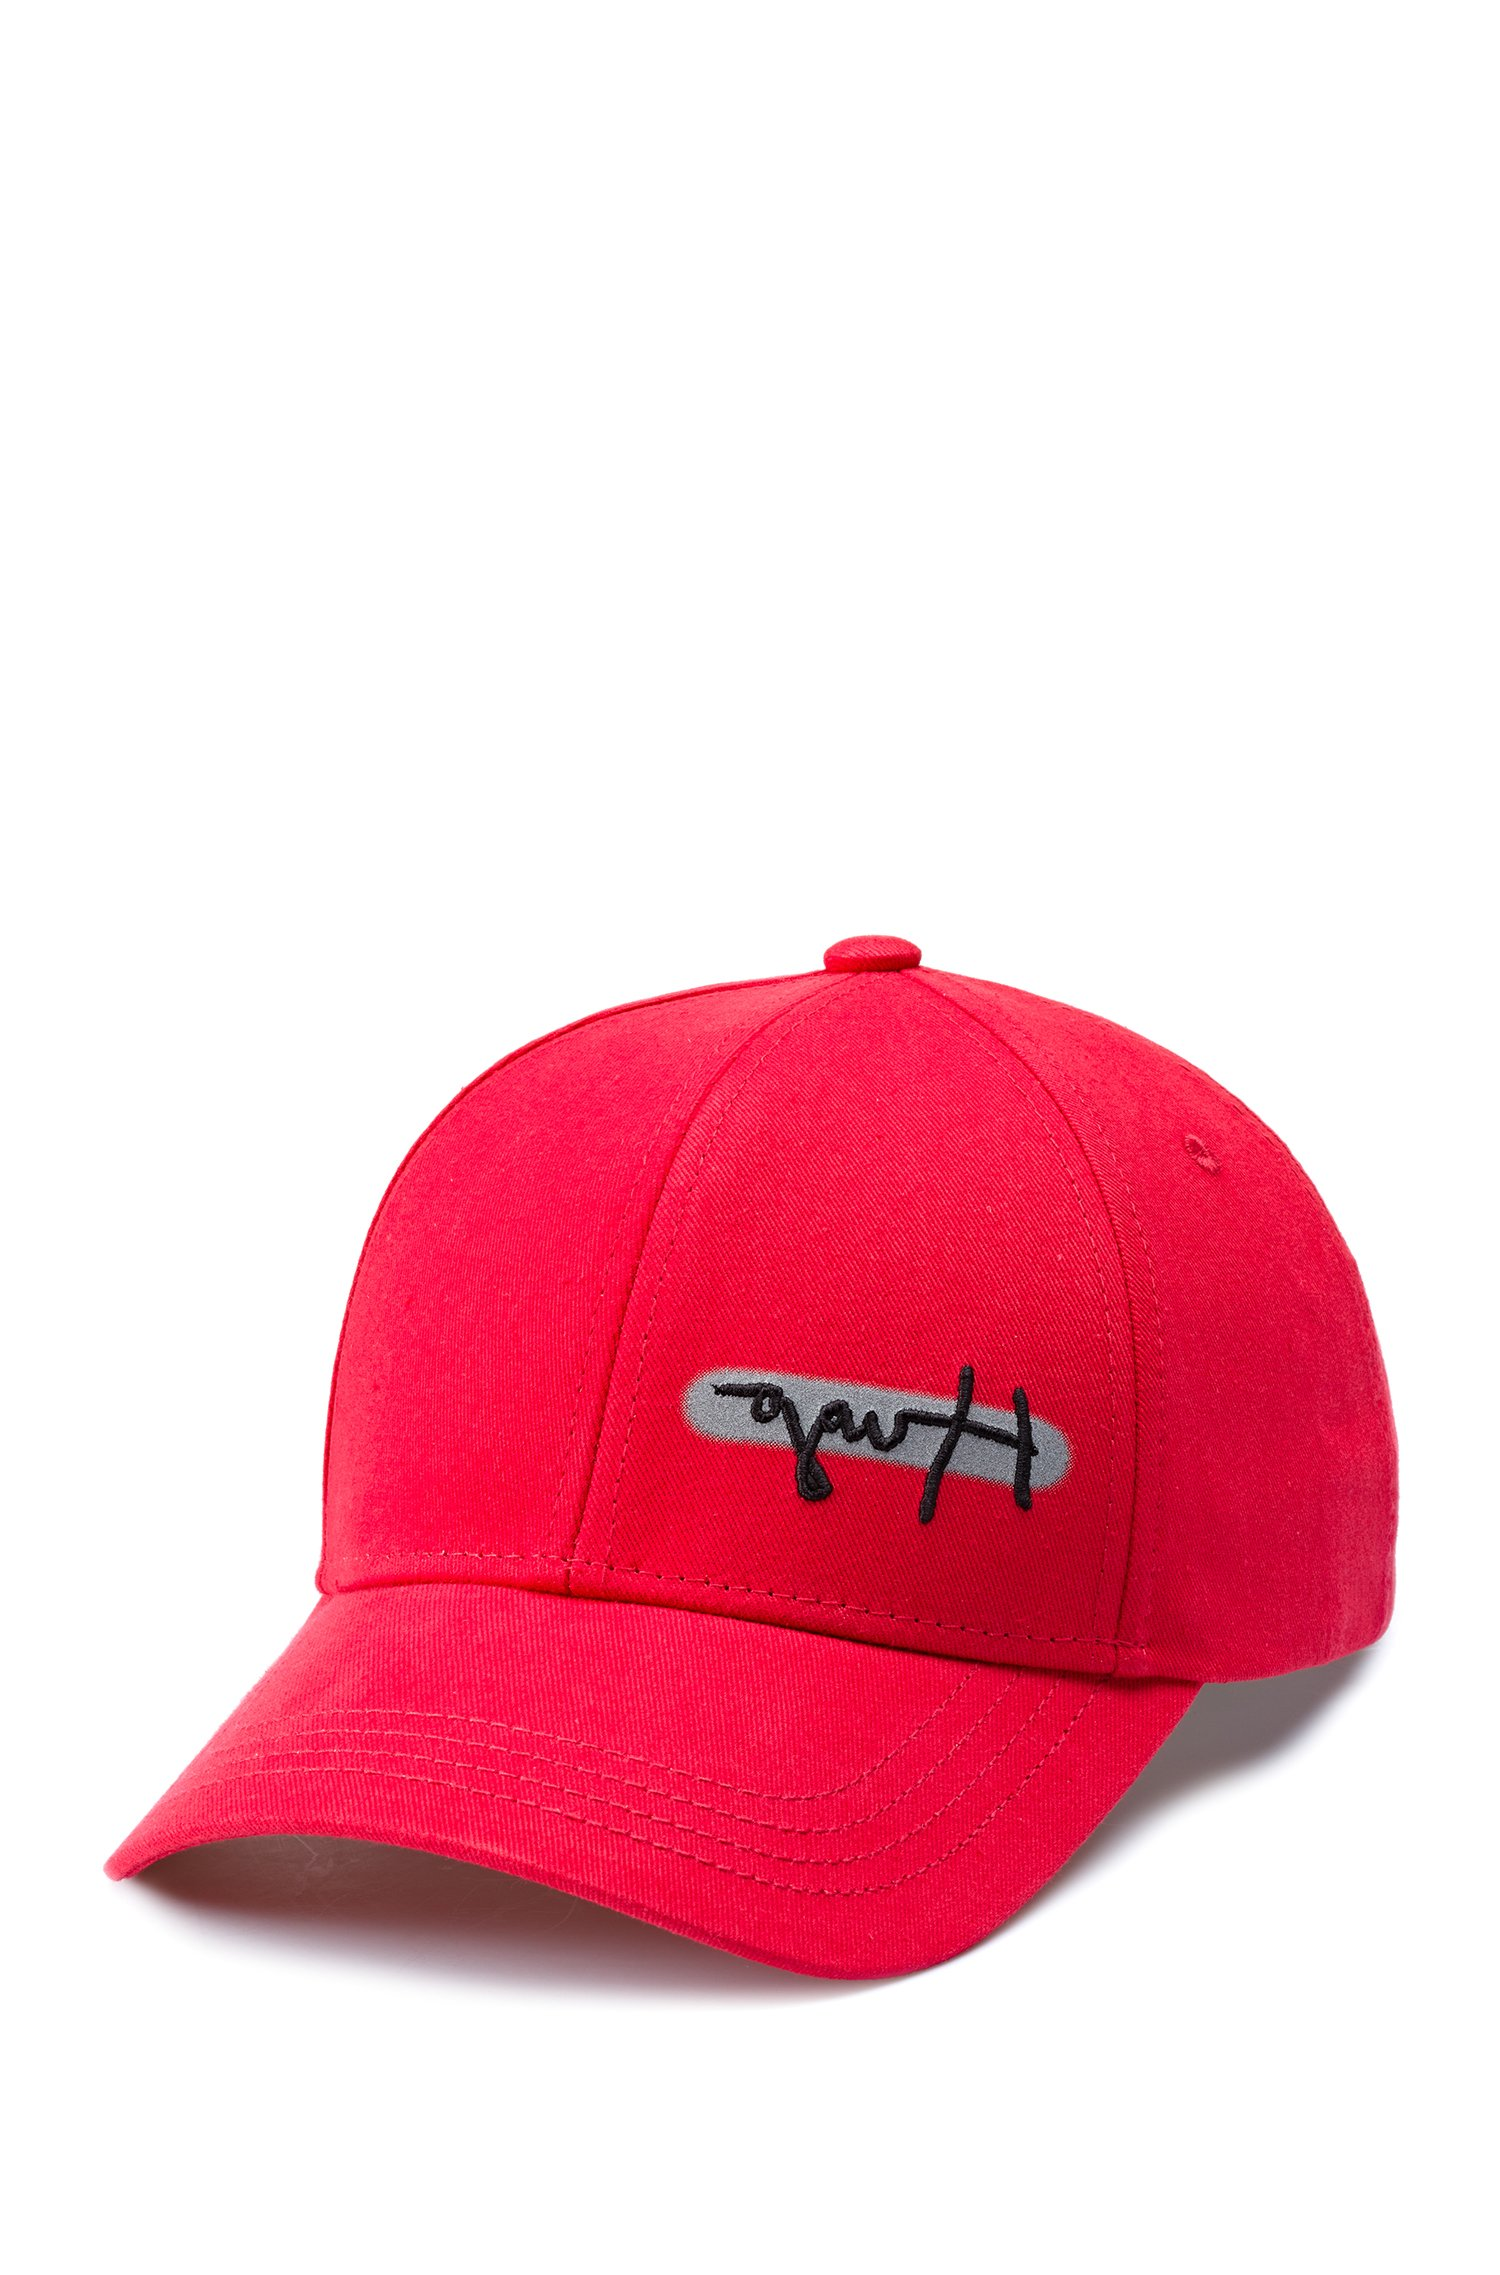 Cotton-twill logo cap with reflective spray print, Red